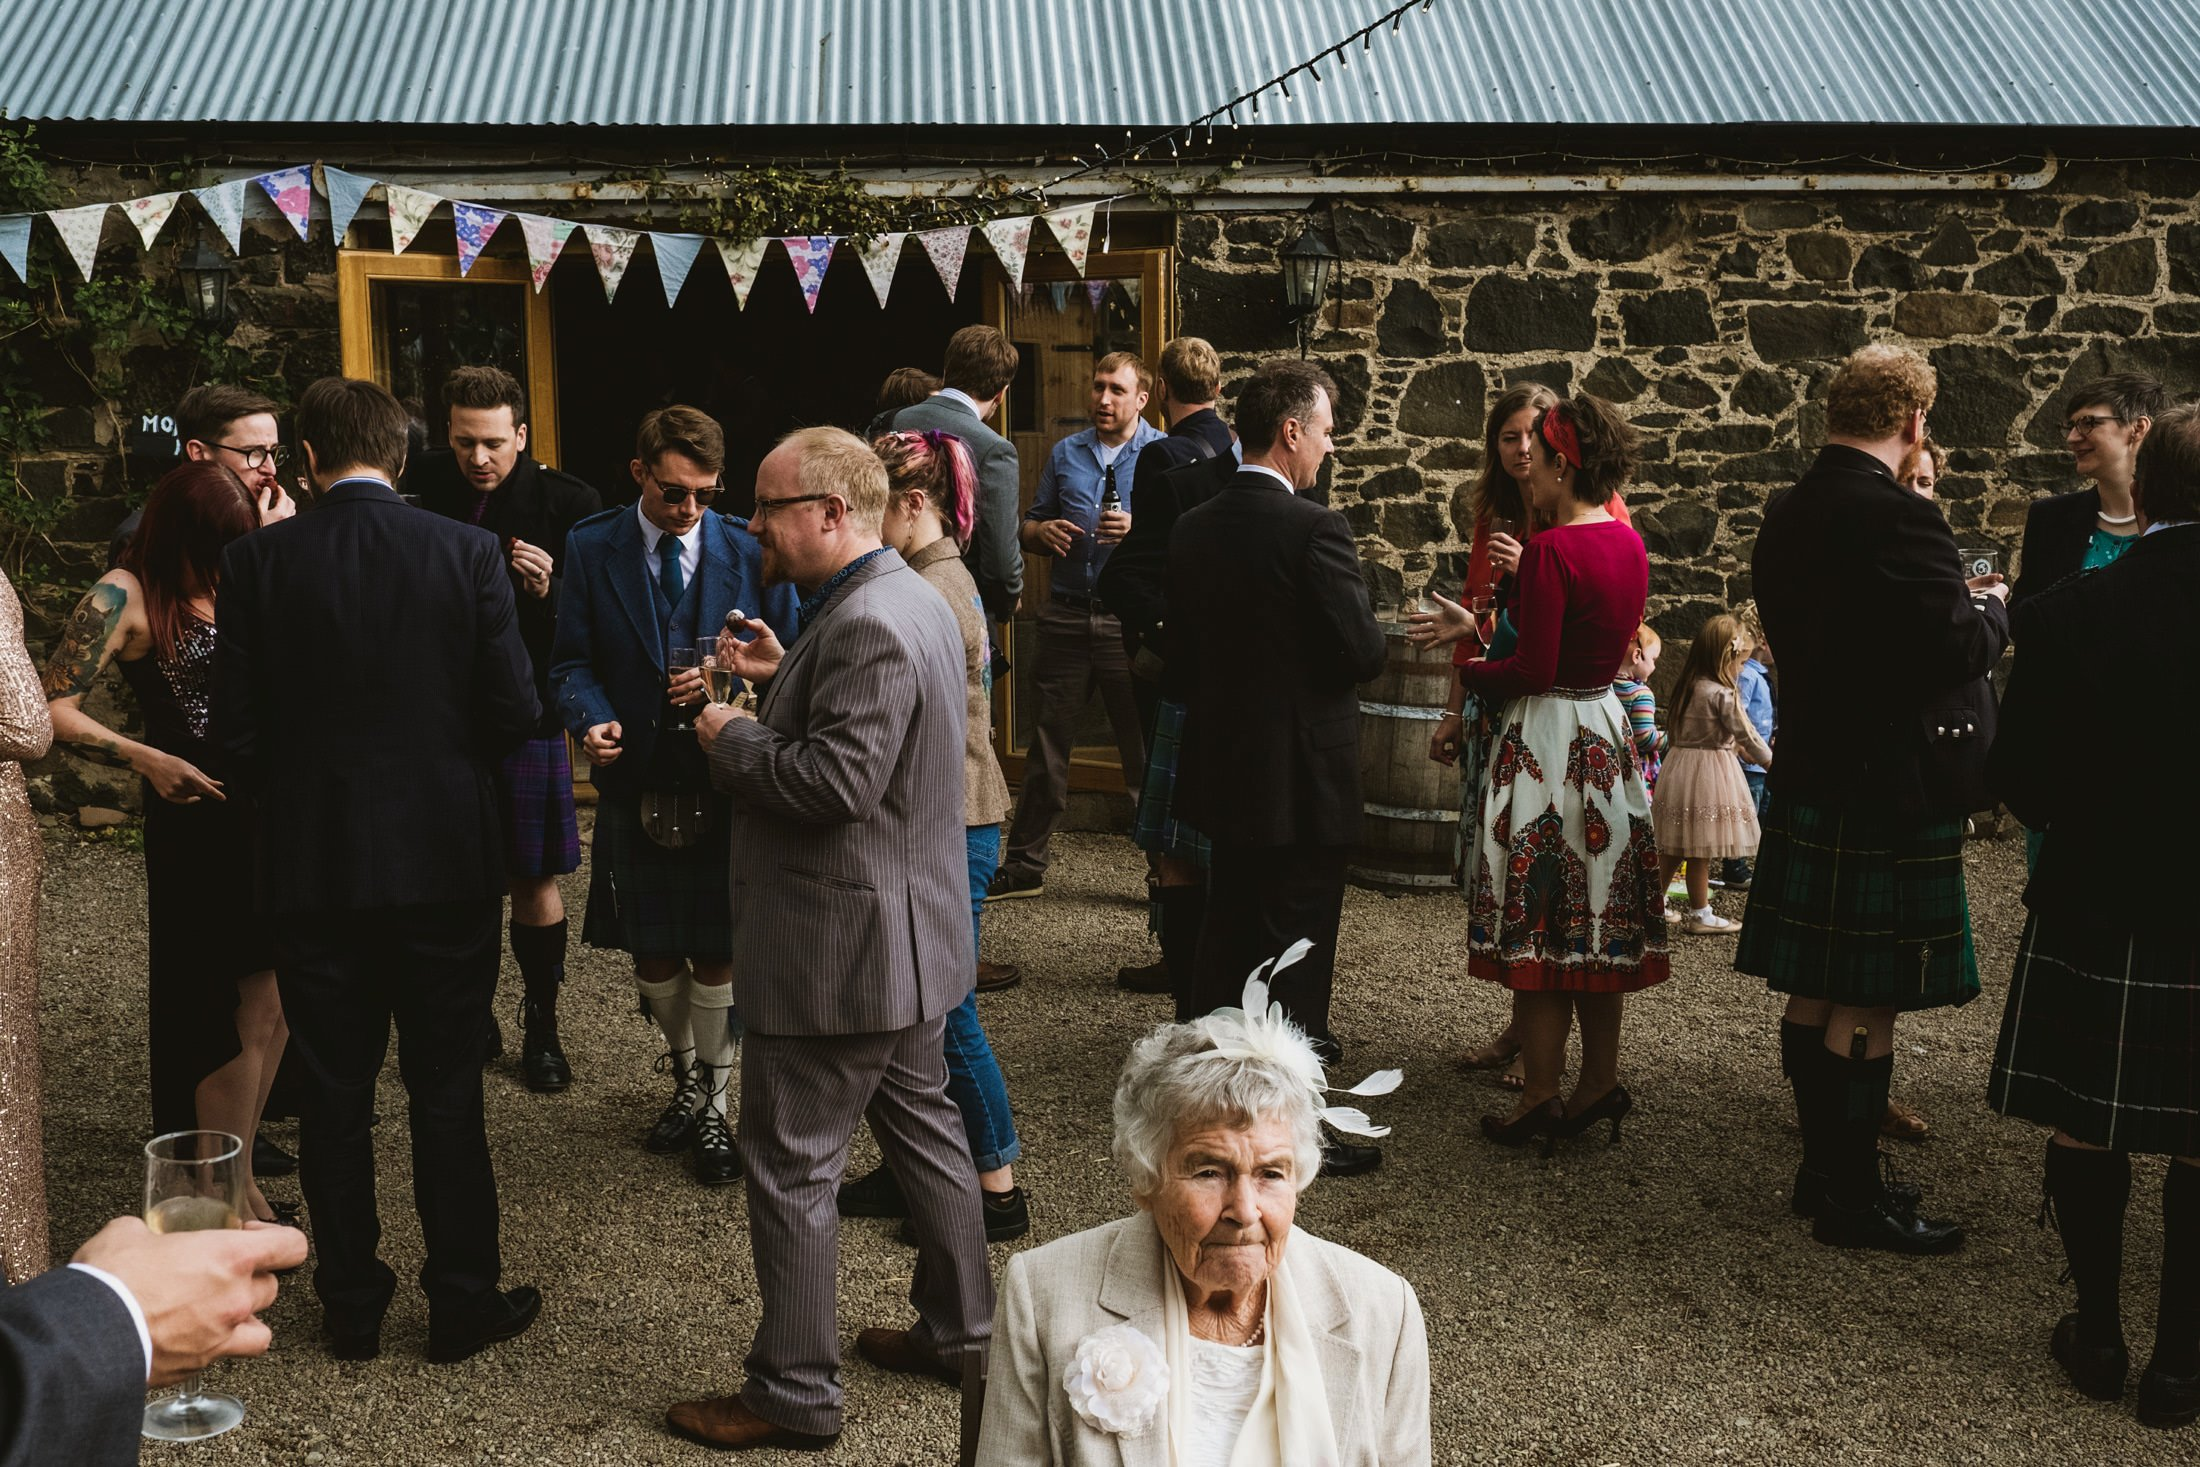 wedding reception, elderly guest in the middle of the frame